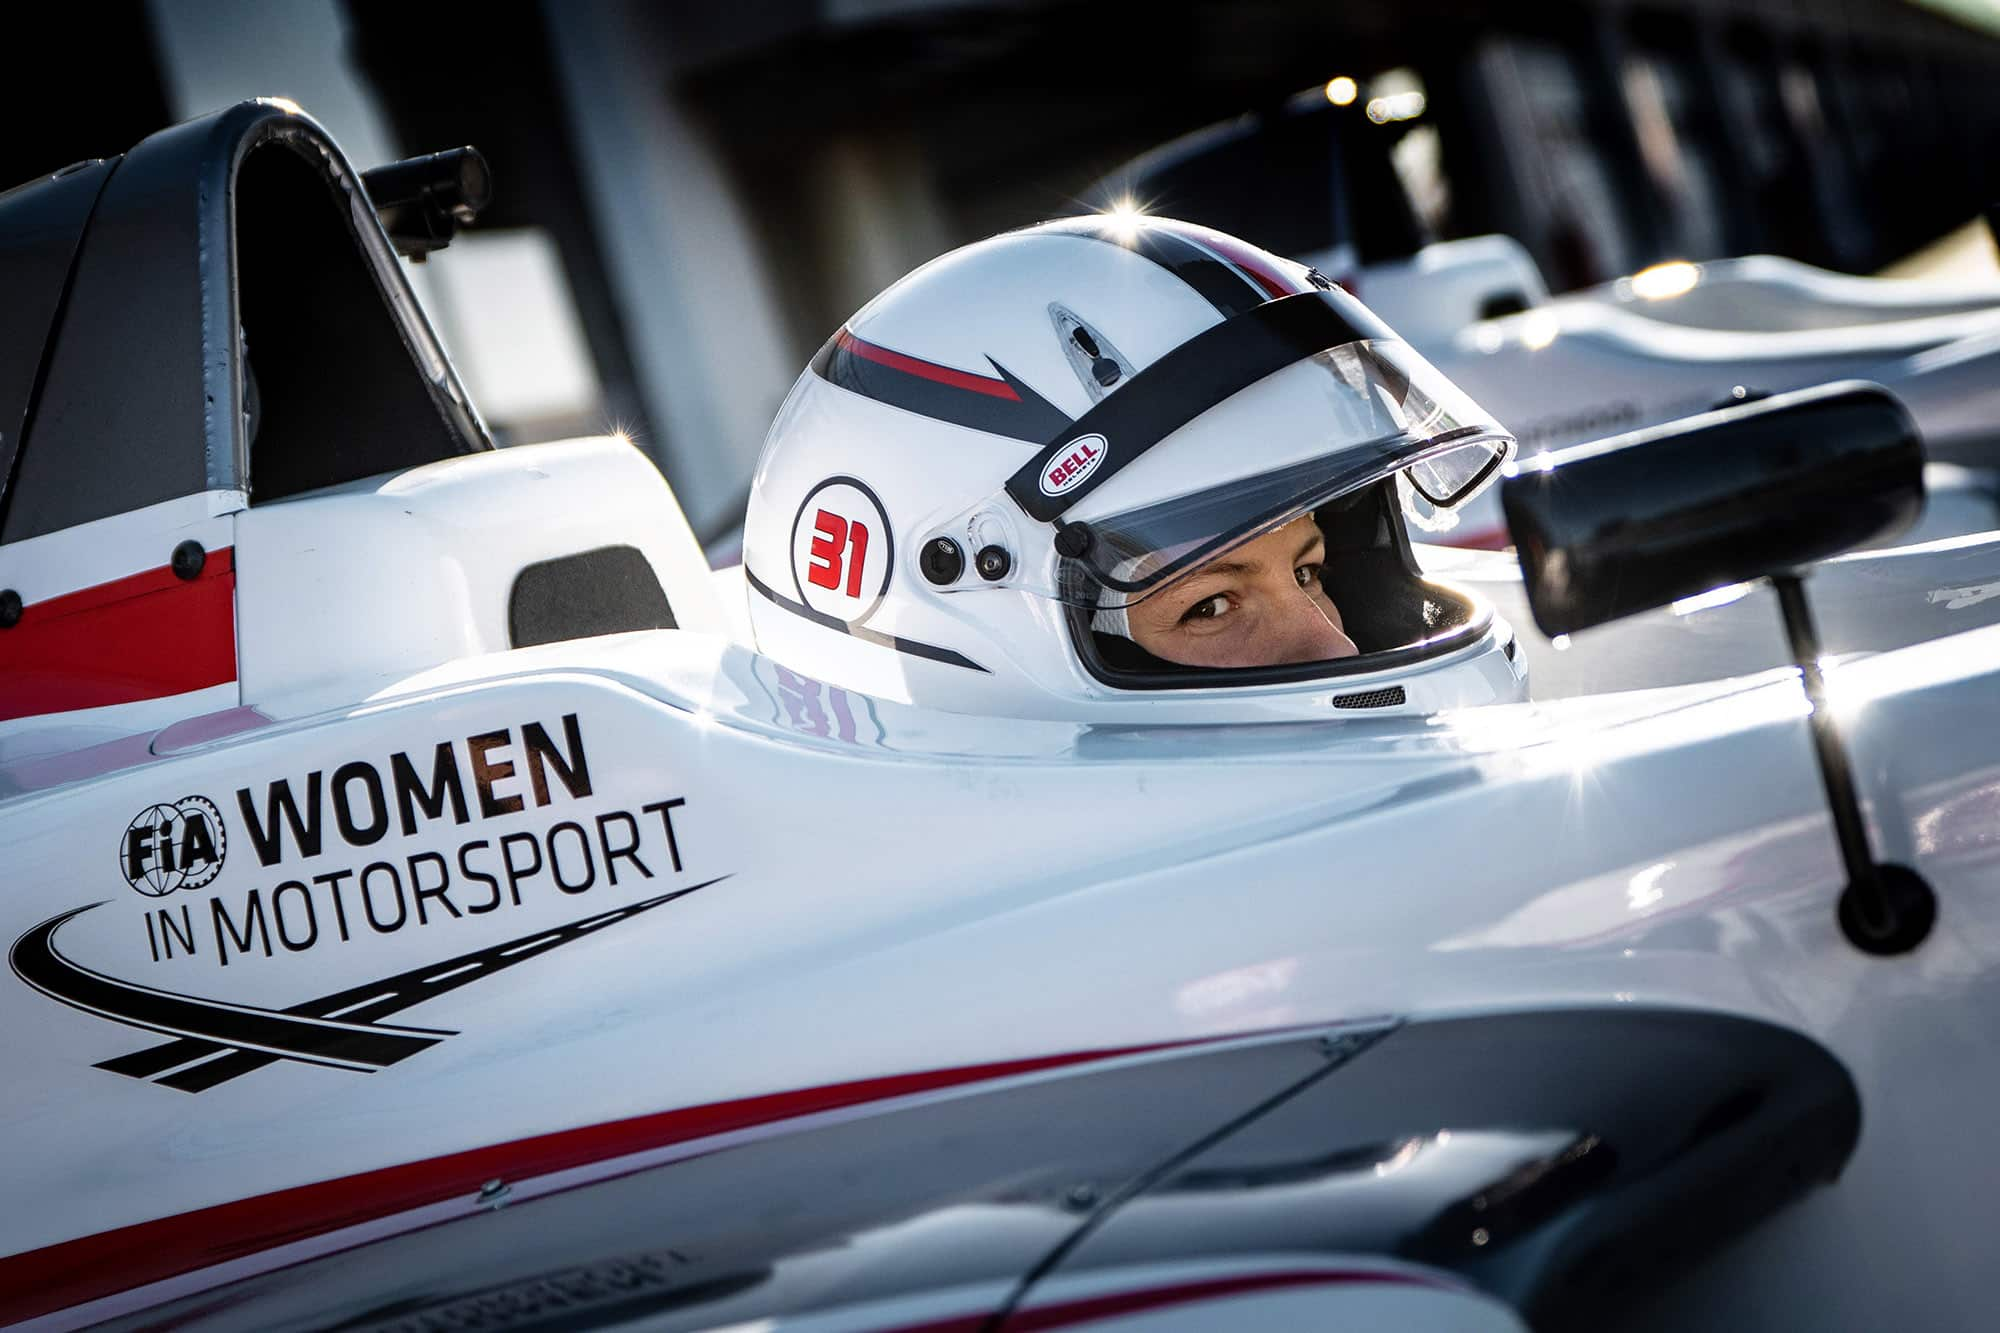 Doriane Pin récompensée par le prix FIA Women in Motorsport 2019